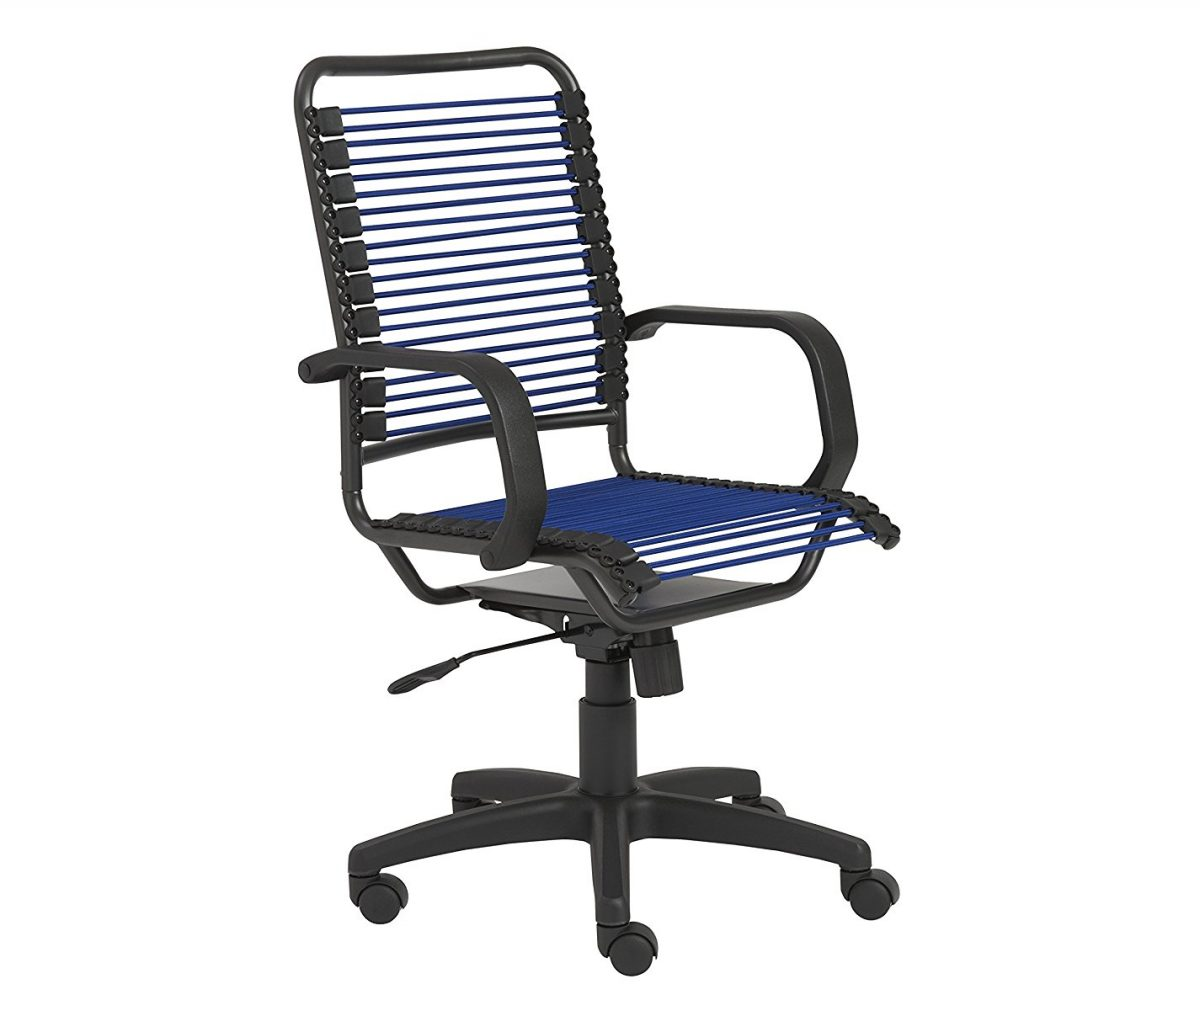 bungee cord chair diy stool model office which one is the best for you great idea hub